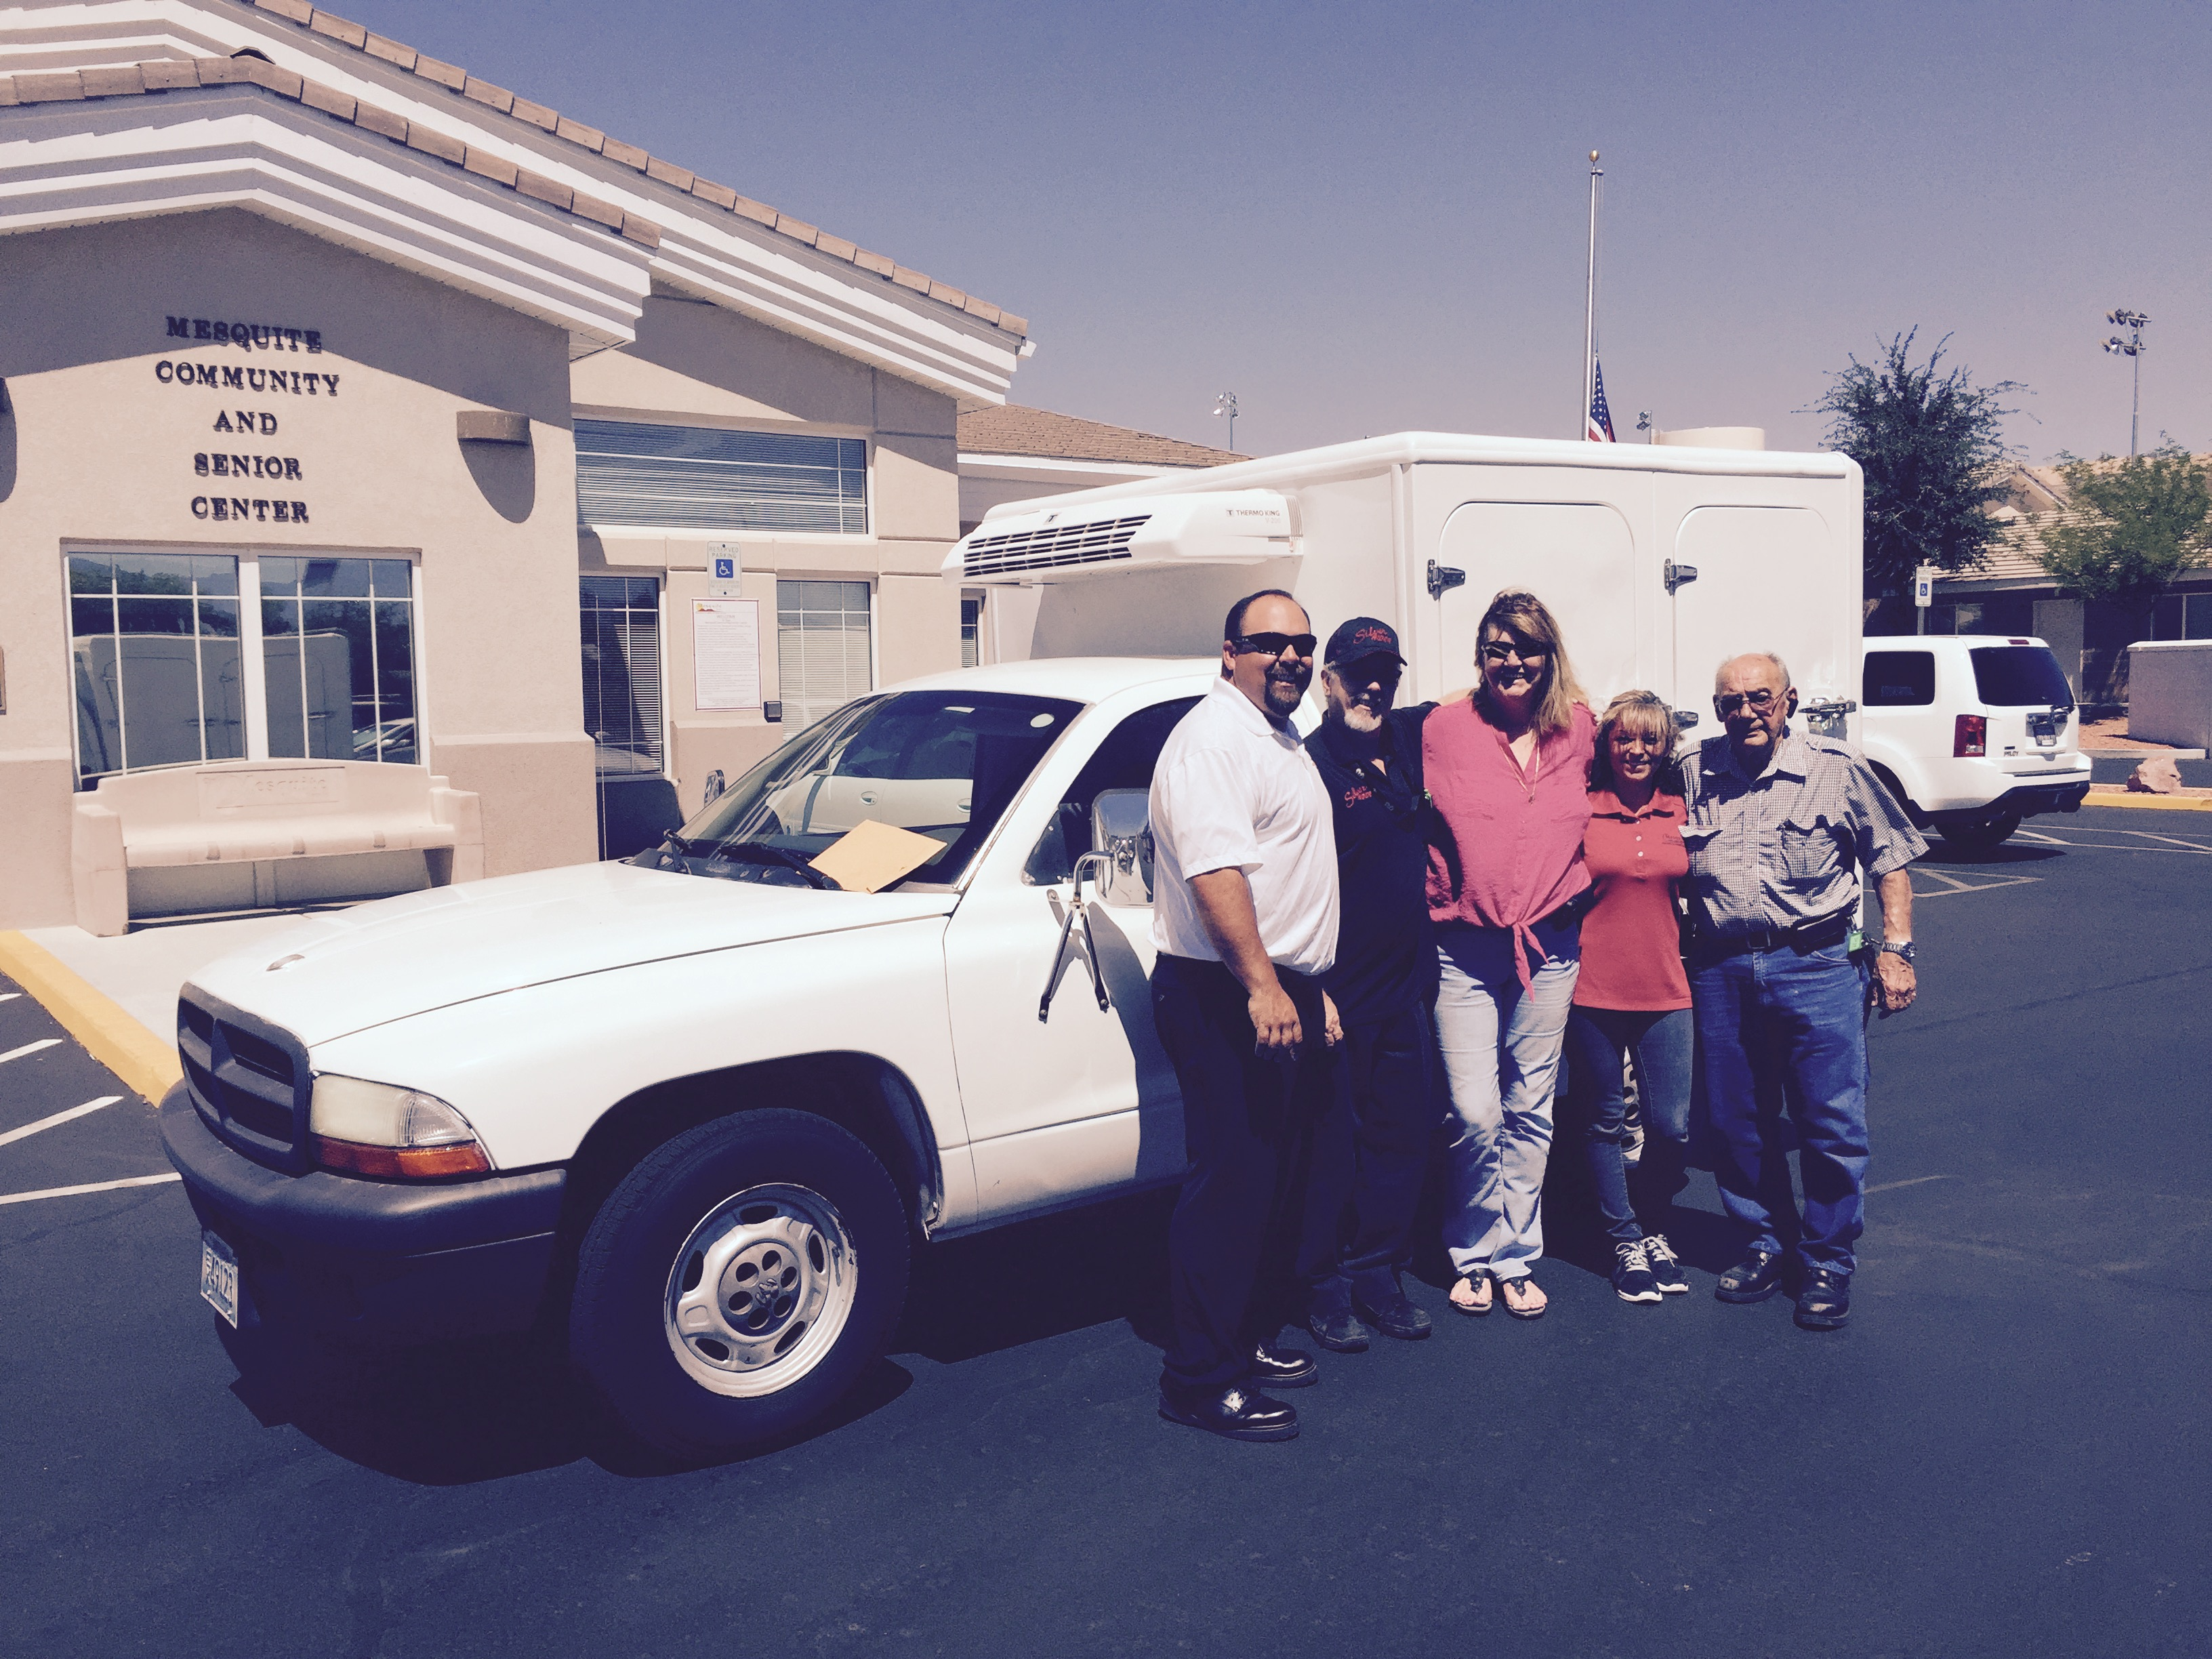 SNTC donates new Meals on Wheels truck to Mesquite